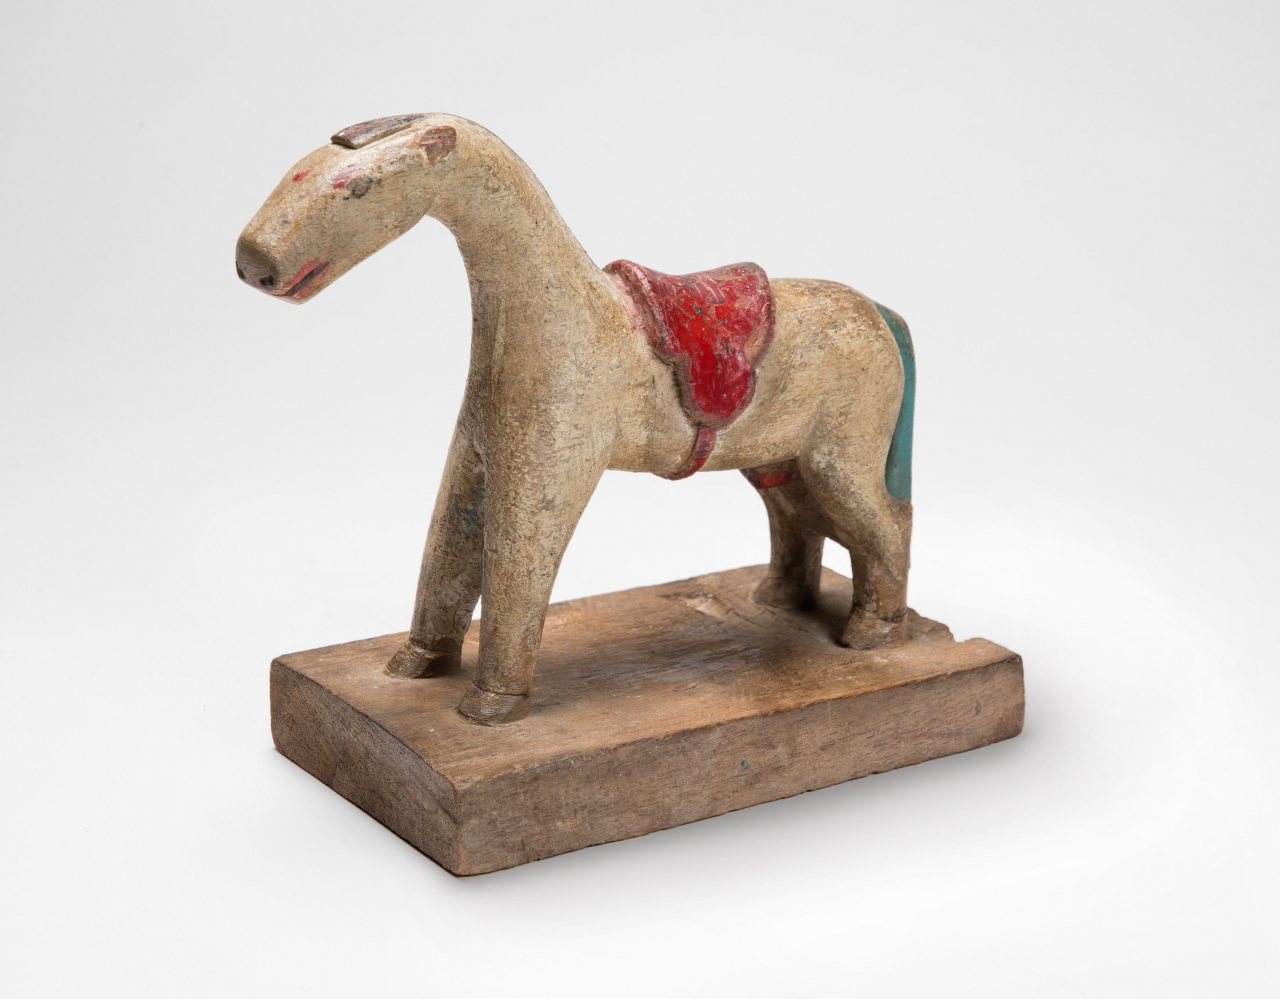 Primitive Folk Art piece - Small wooden folk art horse from N. Thailand - Early 1900's